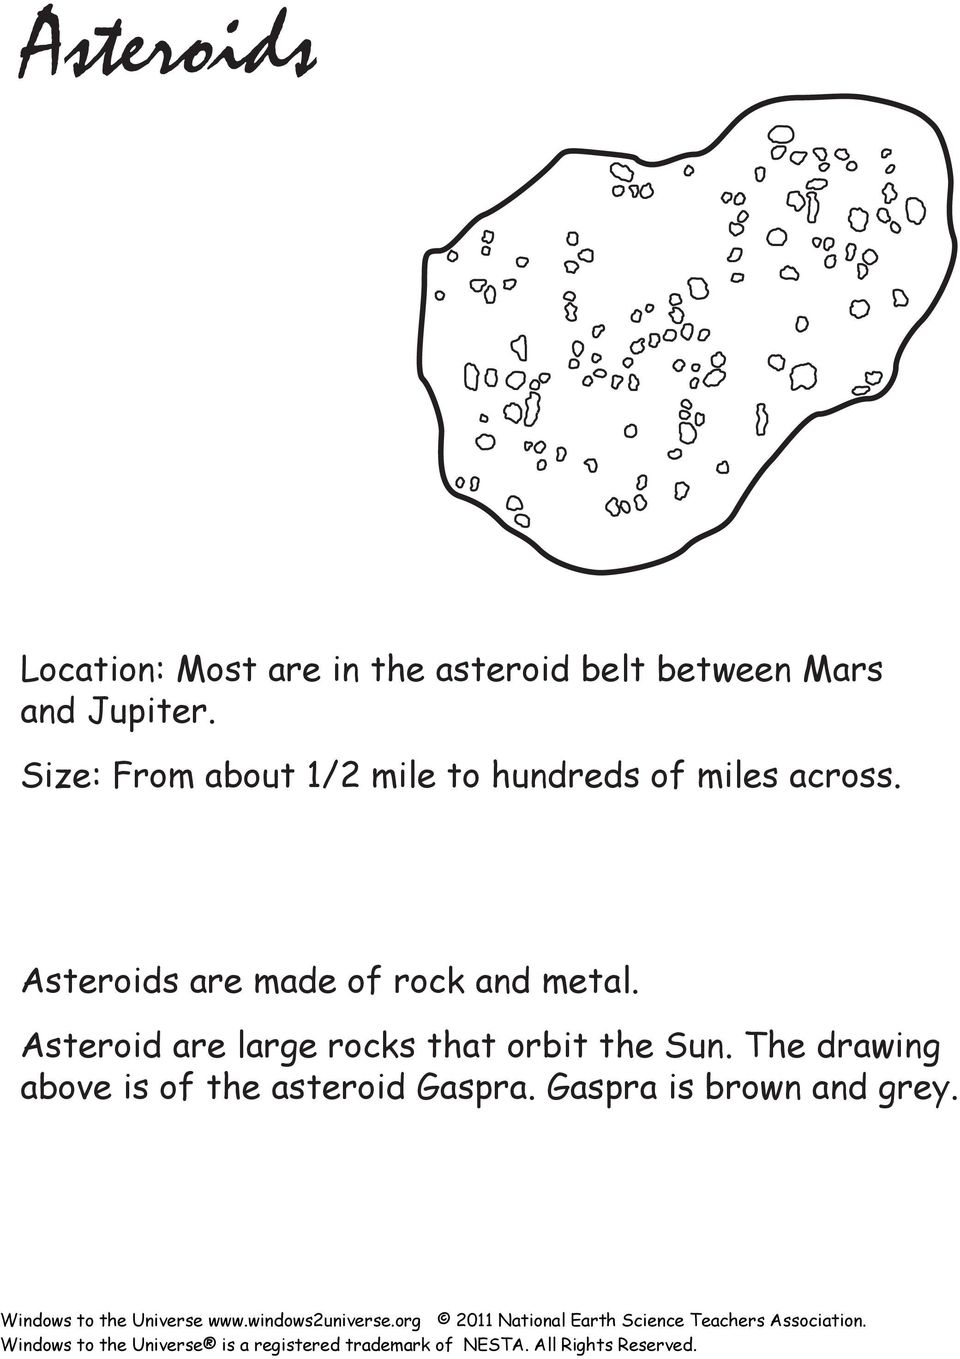 Asteroids are made of rock and metal.